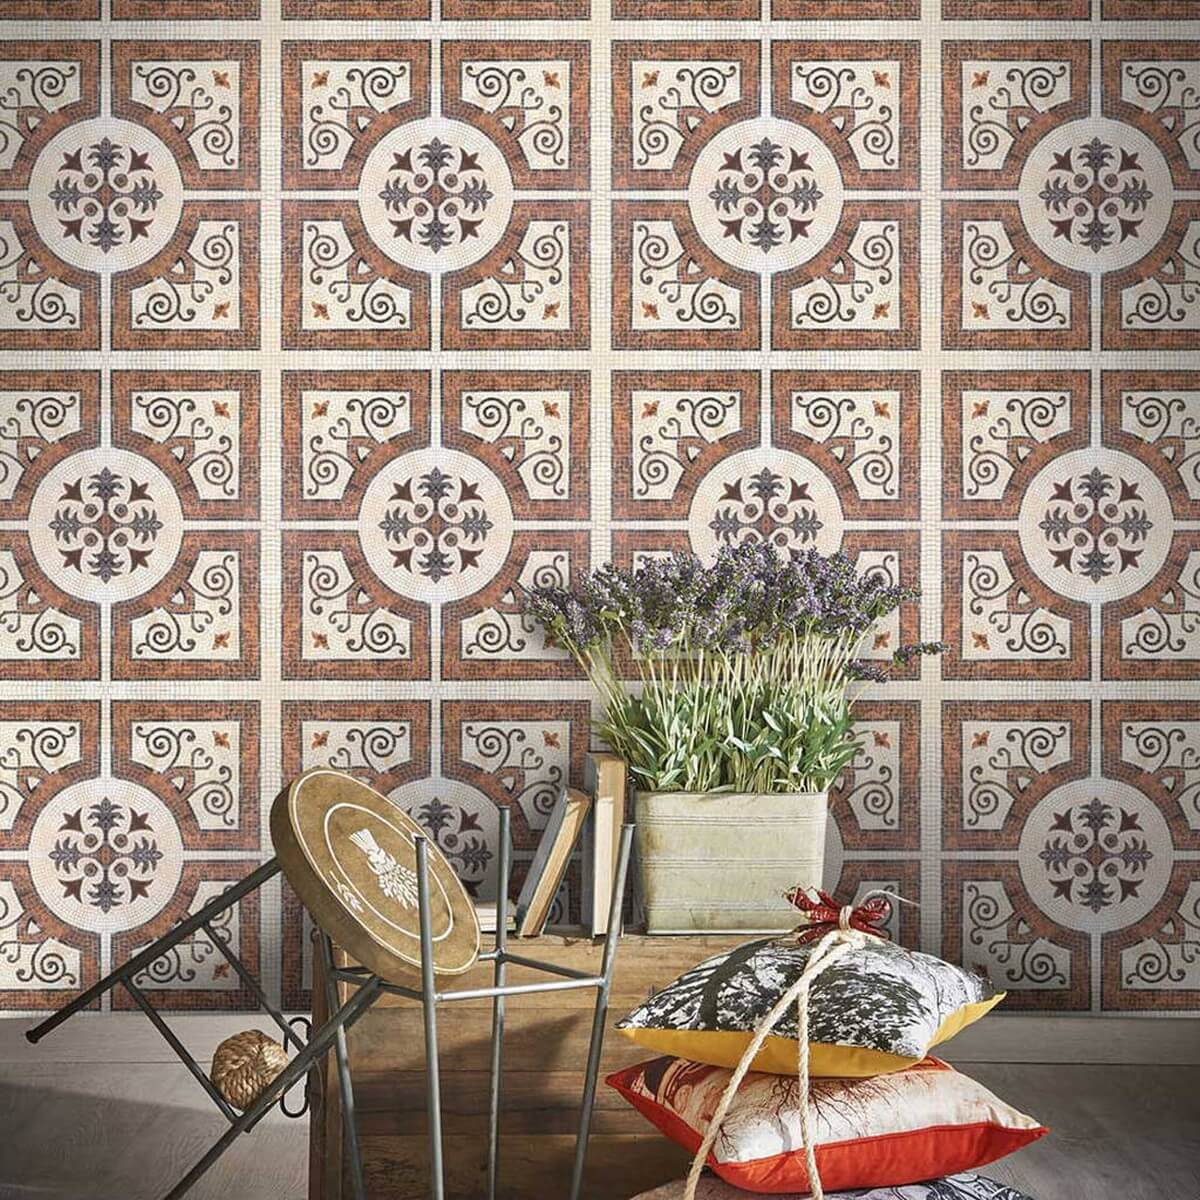 Decorative tiles add personality to floors, backsplashes or wall. They can turn ordinary surfaces into works of art and can boost a basic bathroom tile design or kitchen tile design.